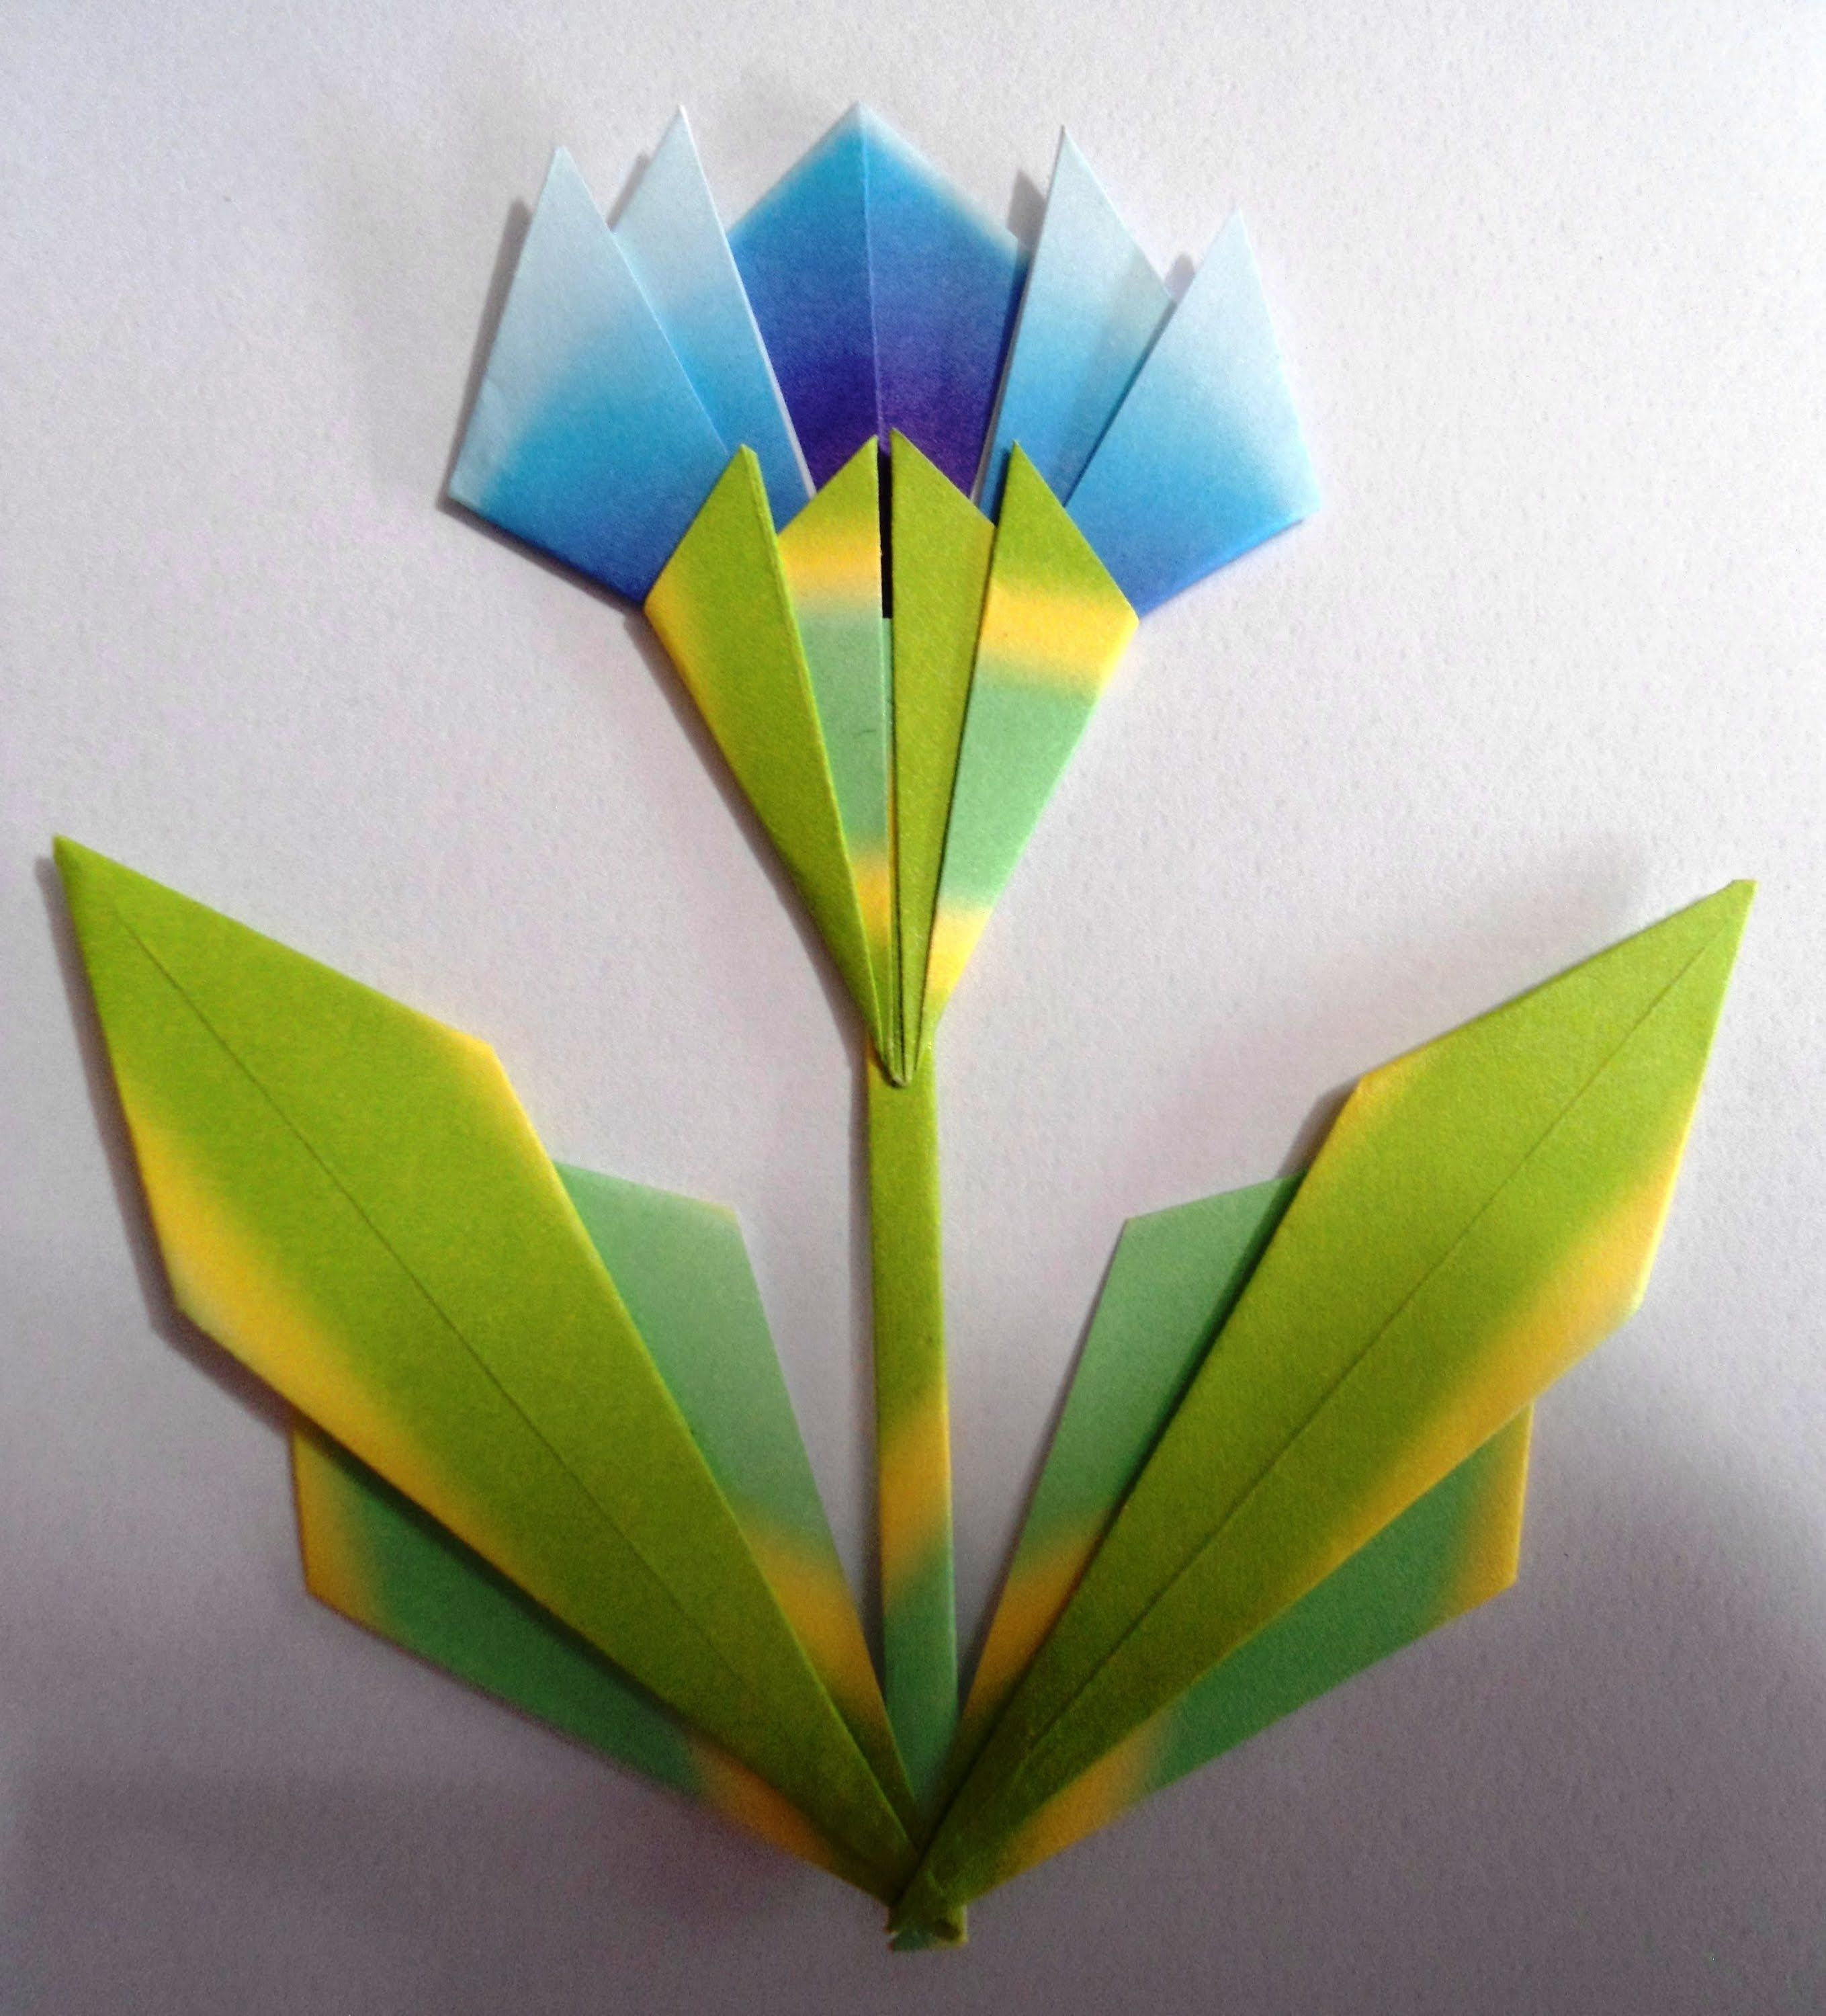 Flor de origami plana tulipa azul origami pinterest origami flower x in flower x 5 in flower base and leaves x 5 in stem jeuxipadfo Images